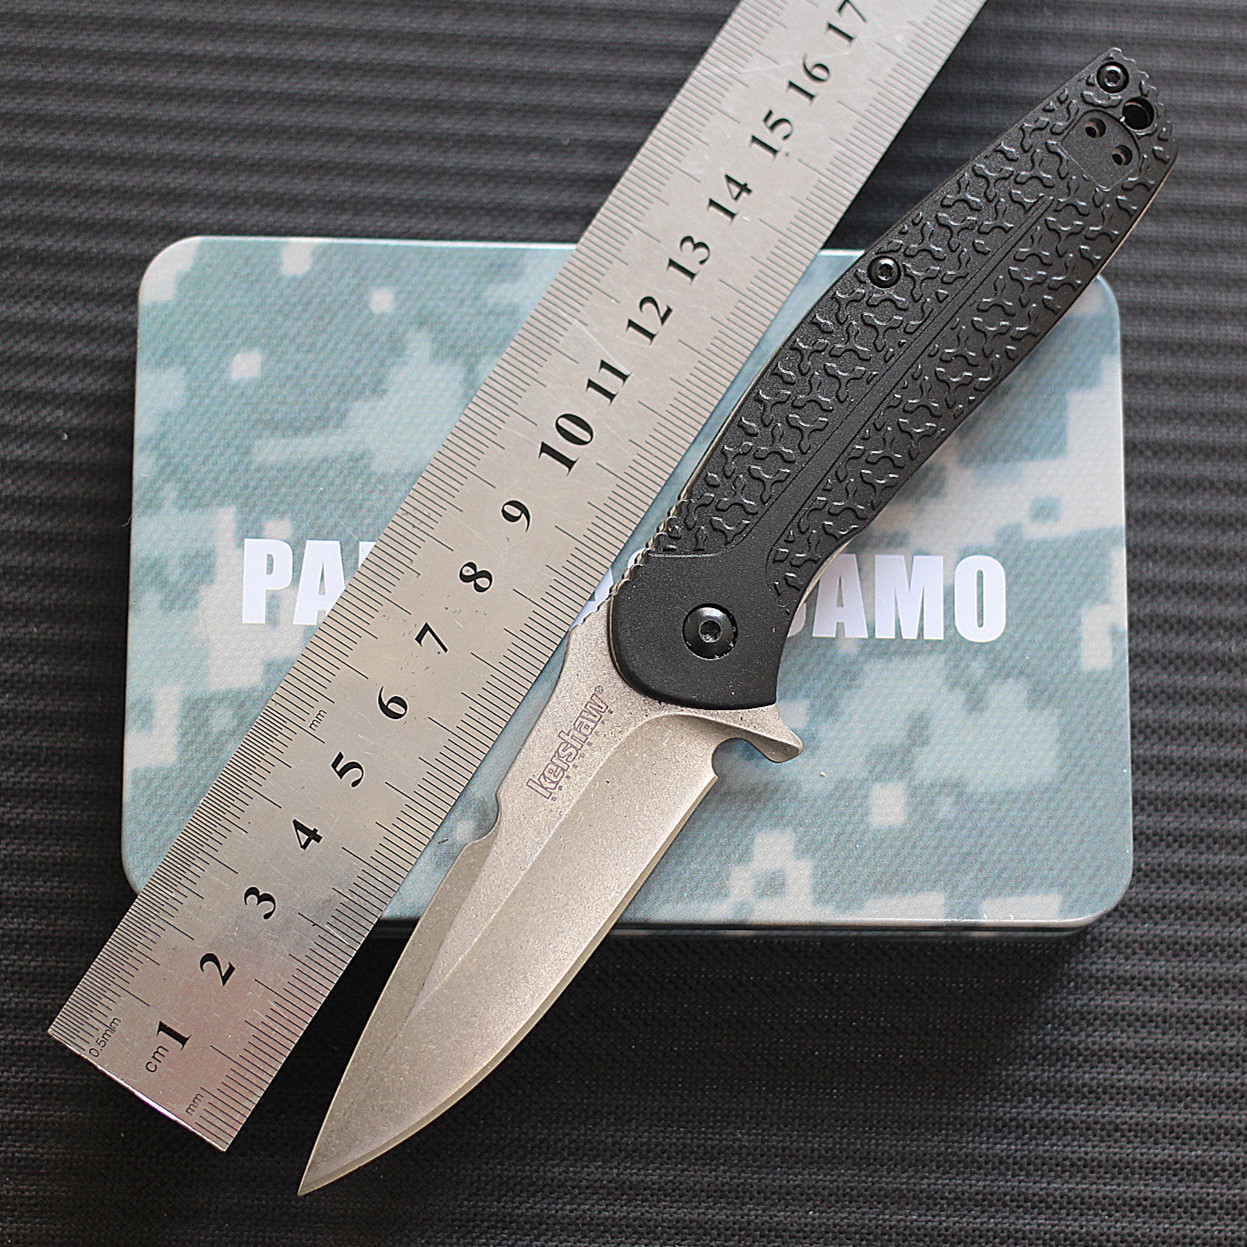 American card show original Kershaw 1970 folding knife high hardness outdoor quick open small folding knife camping EDC tool